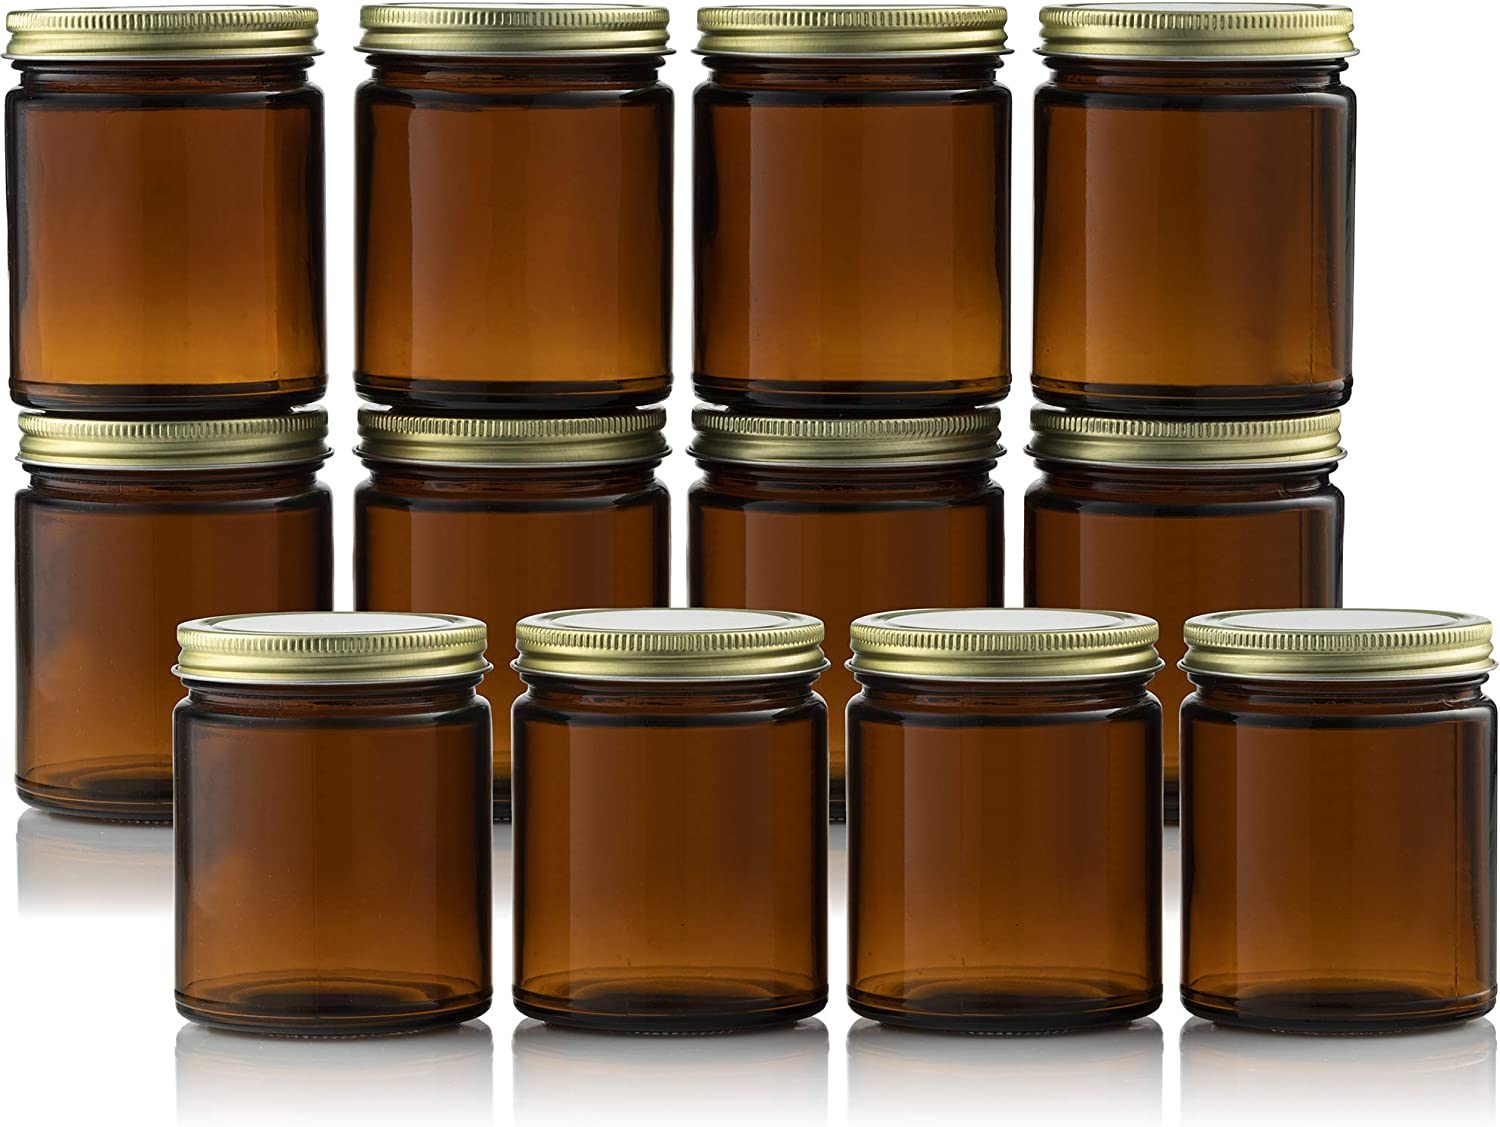 Amber Glass Jars 8 Ounce for Candle Making (12 Pack) Straight Side For DIY Projects, Herbs, Homemade Cosmetics, Decorating, Storing, Overnight Oats, Meal Prep, Wedding Favors, Great For Daily Vitamins